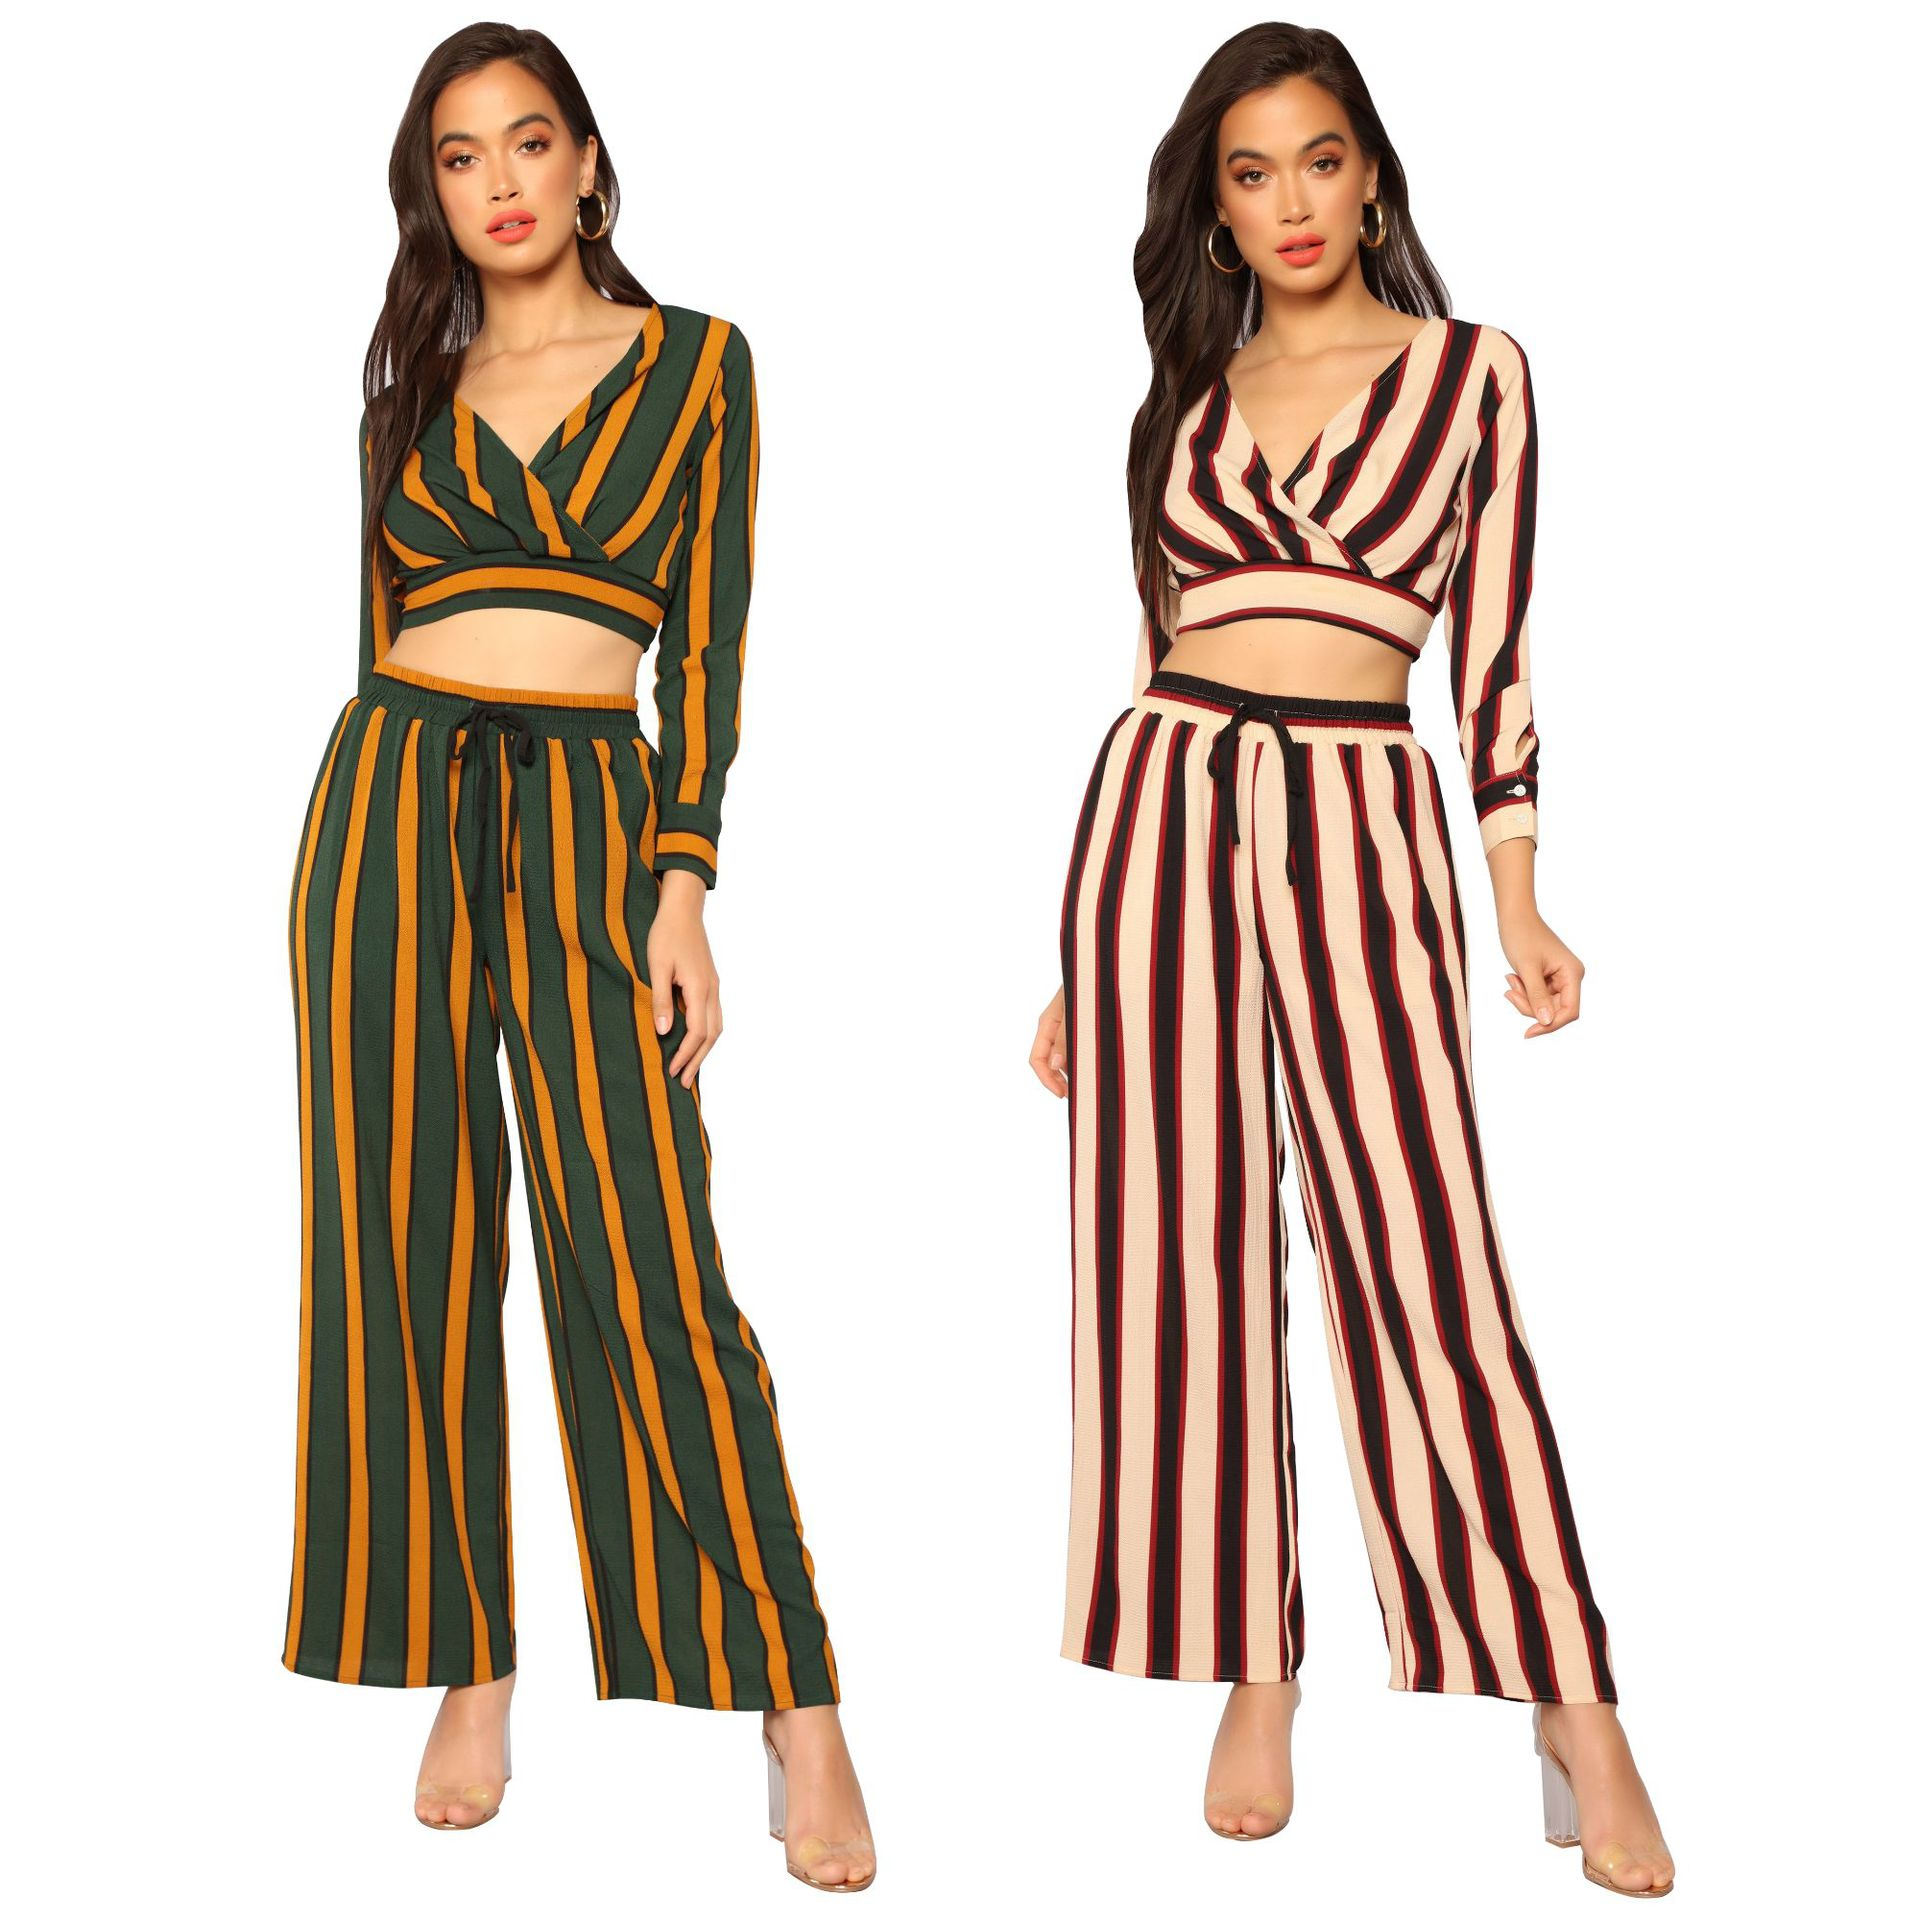 Amazon Wish Hot Selling Europe And America Fashion Women's Contrast Color Stripes V-neck Navel Tops Loose Pants Two-Piece Set